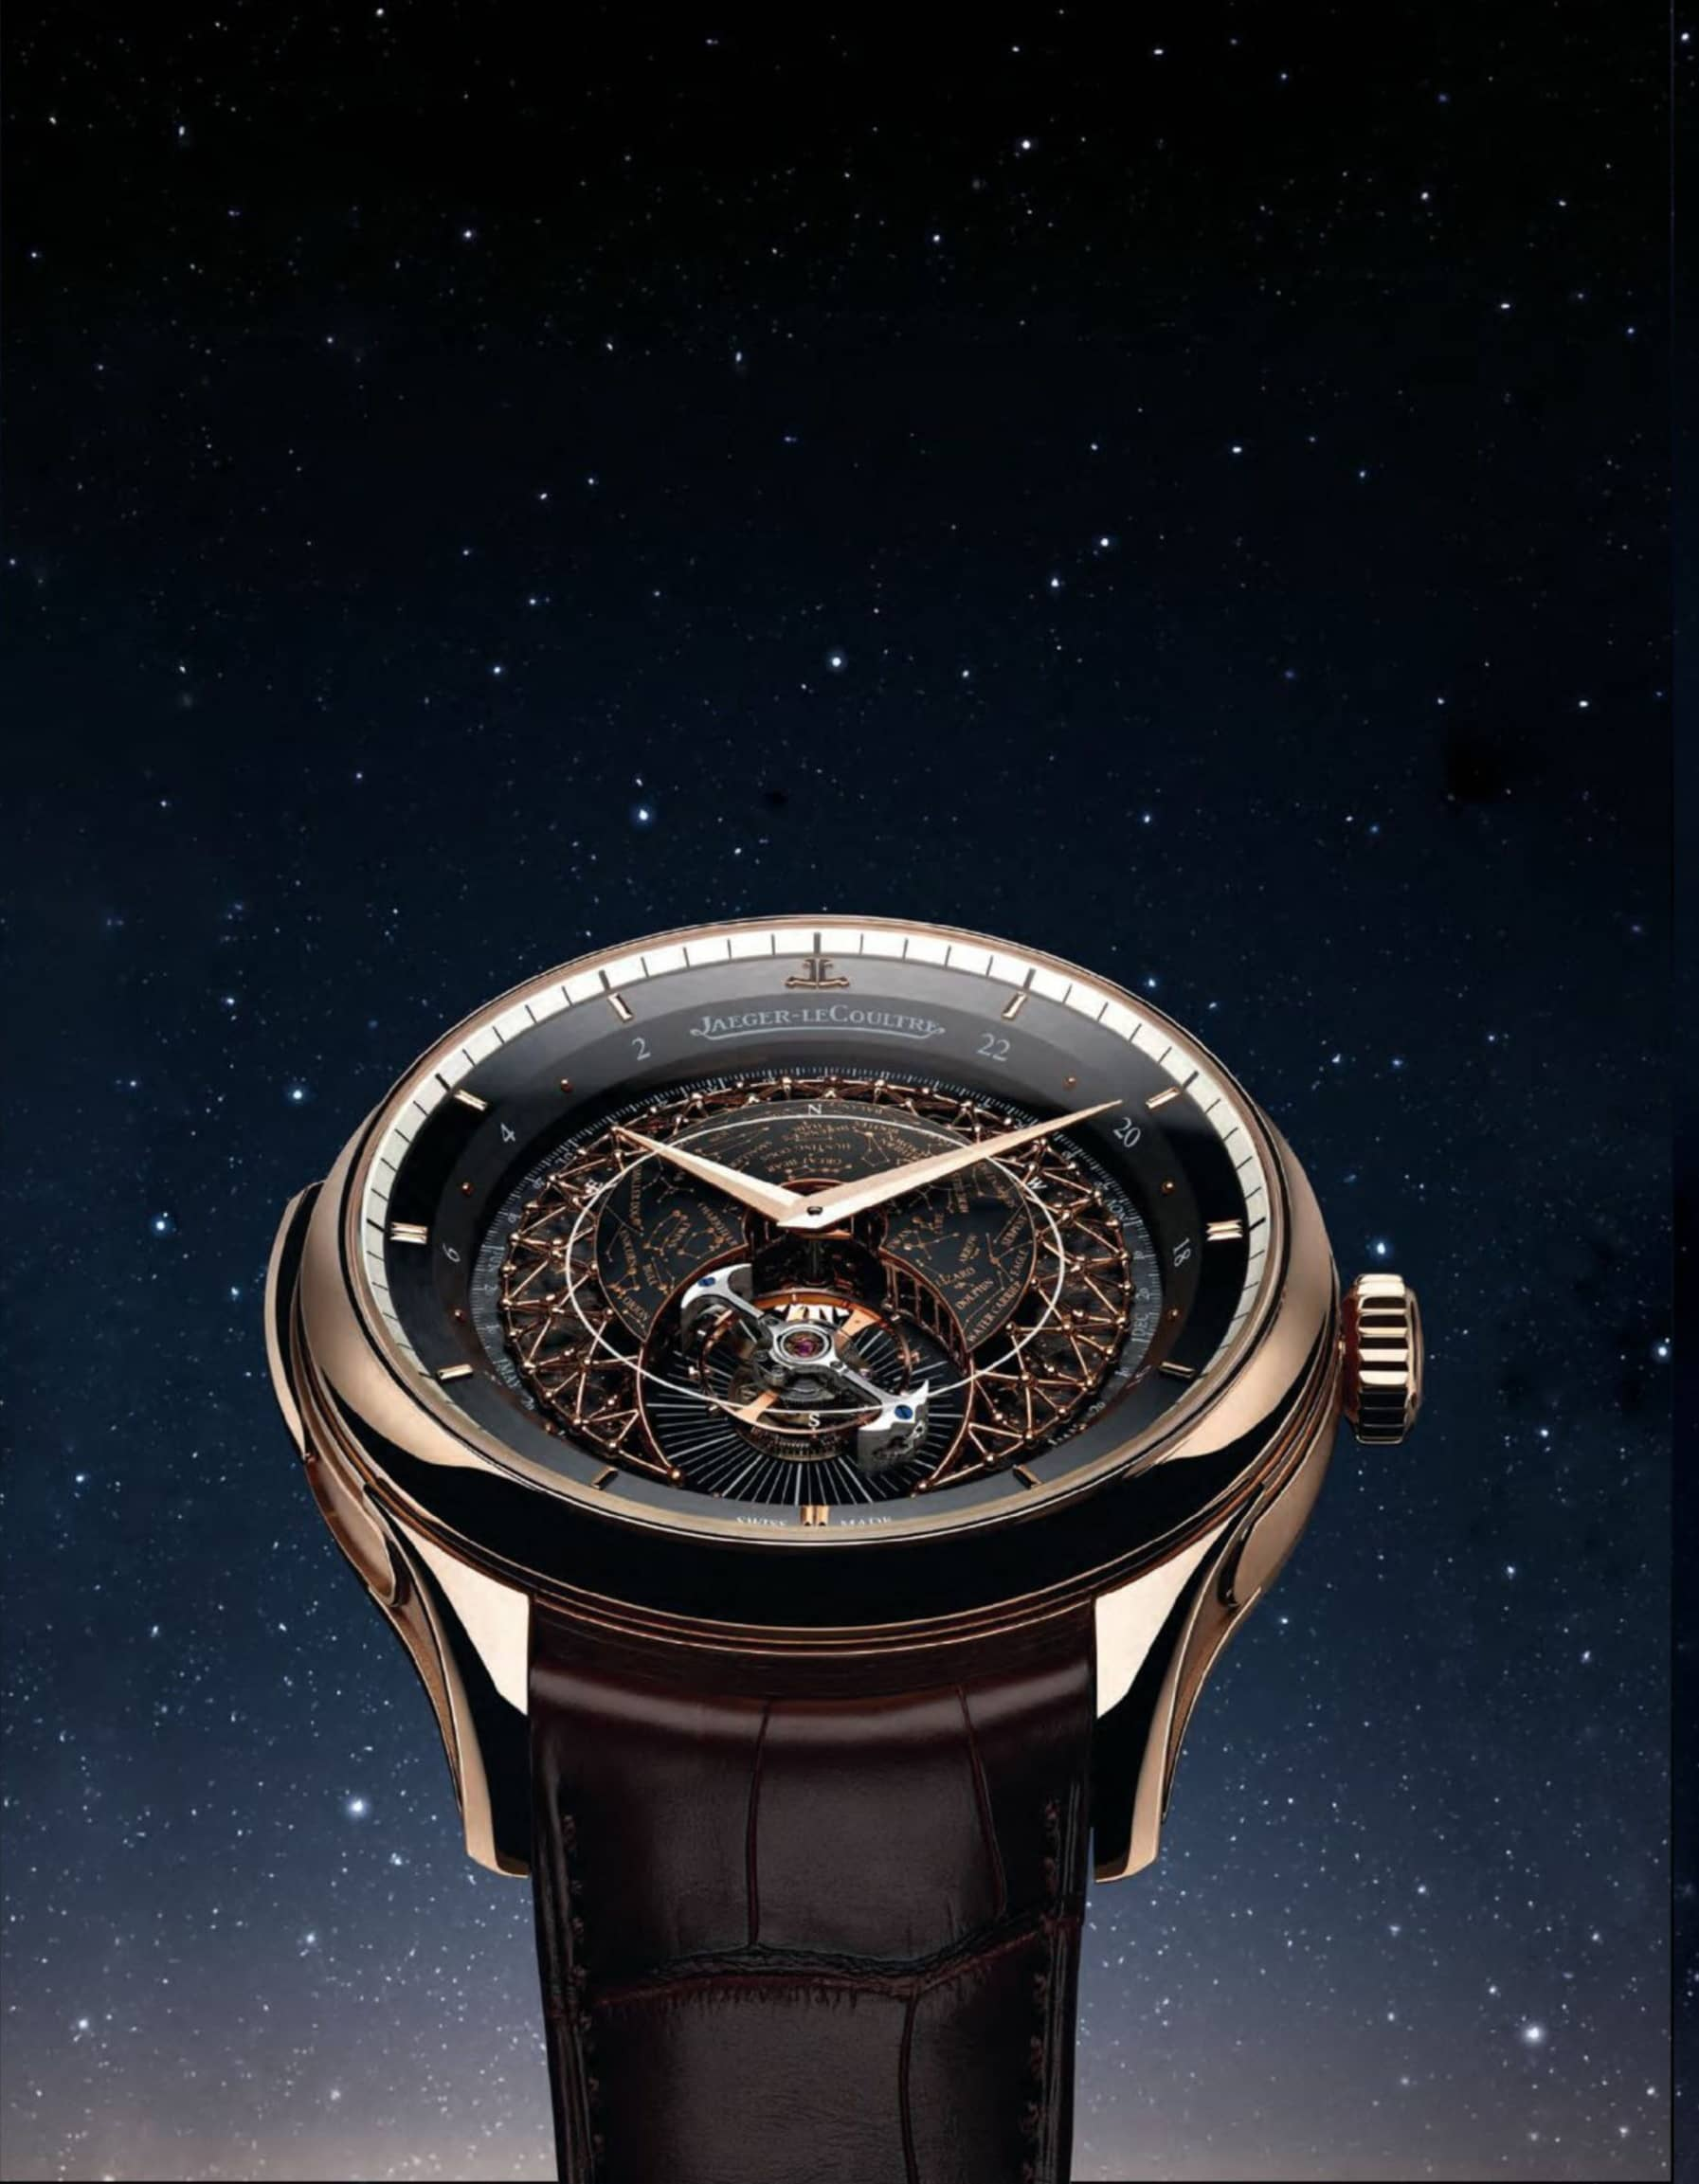 Jaeger-Lecoultre's New Luxury Timepiece Brings The Stars To You